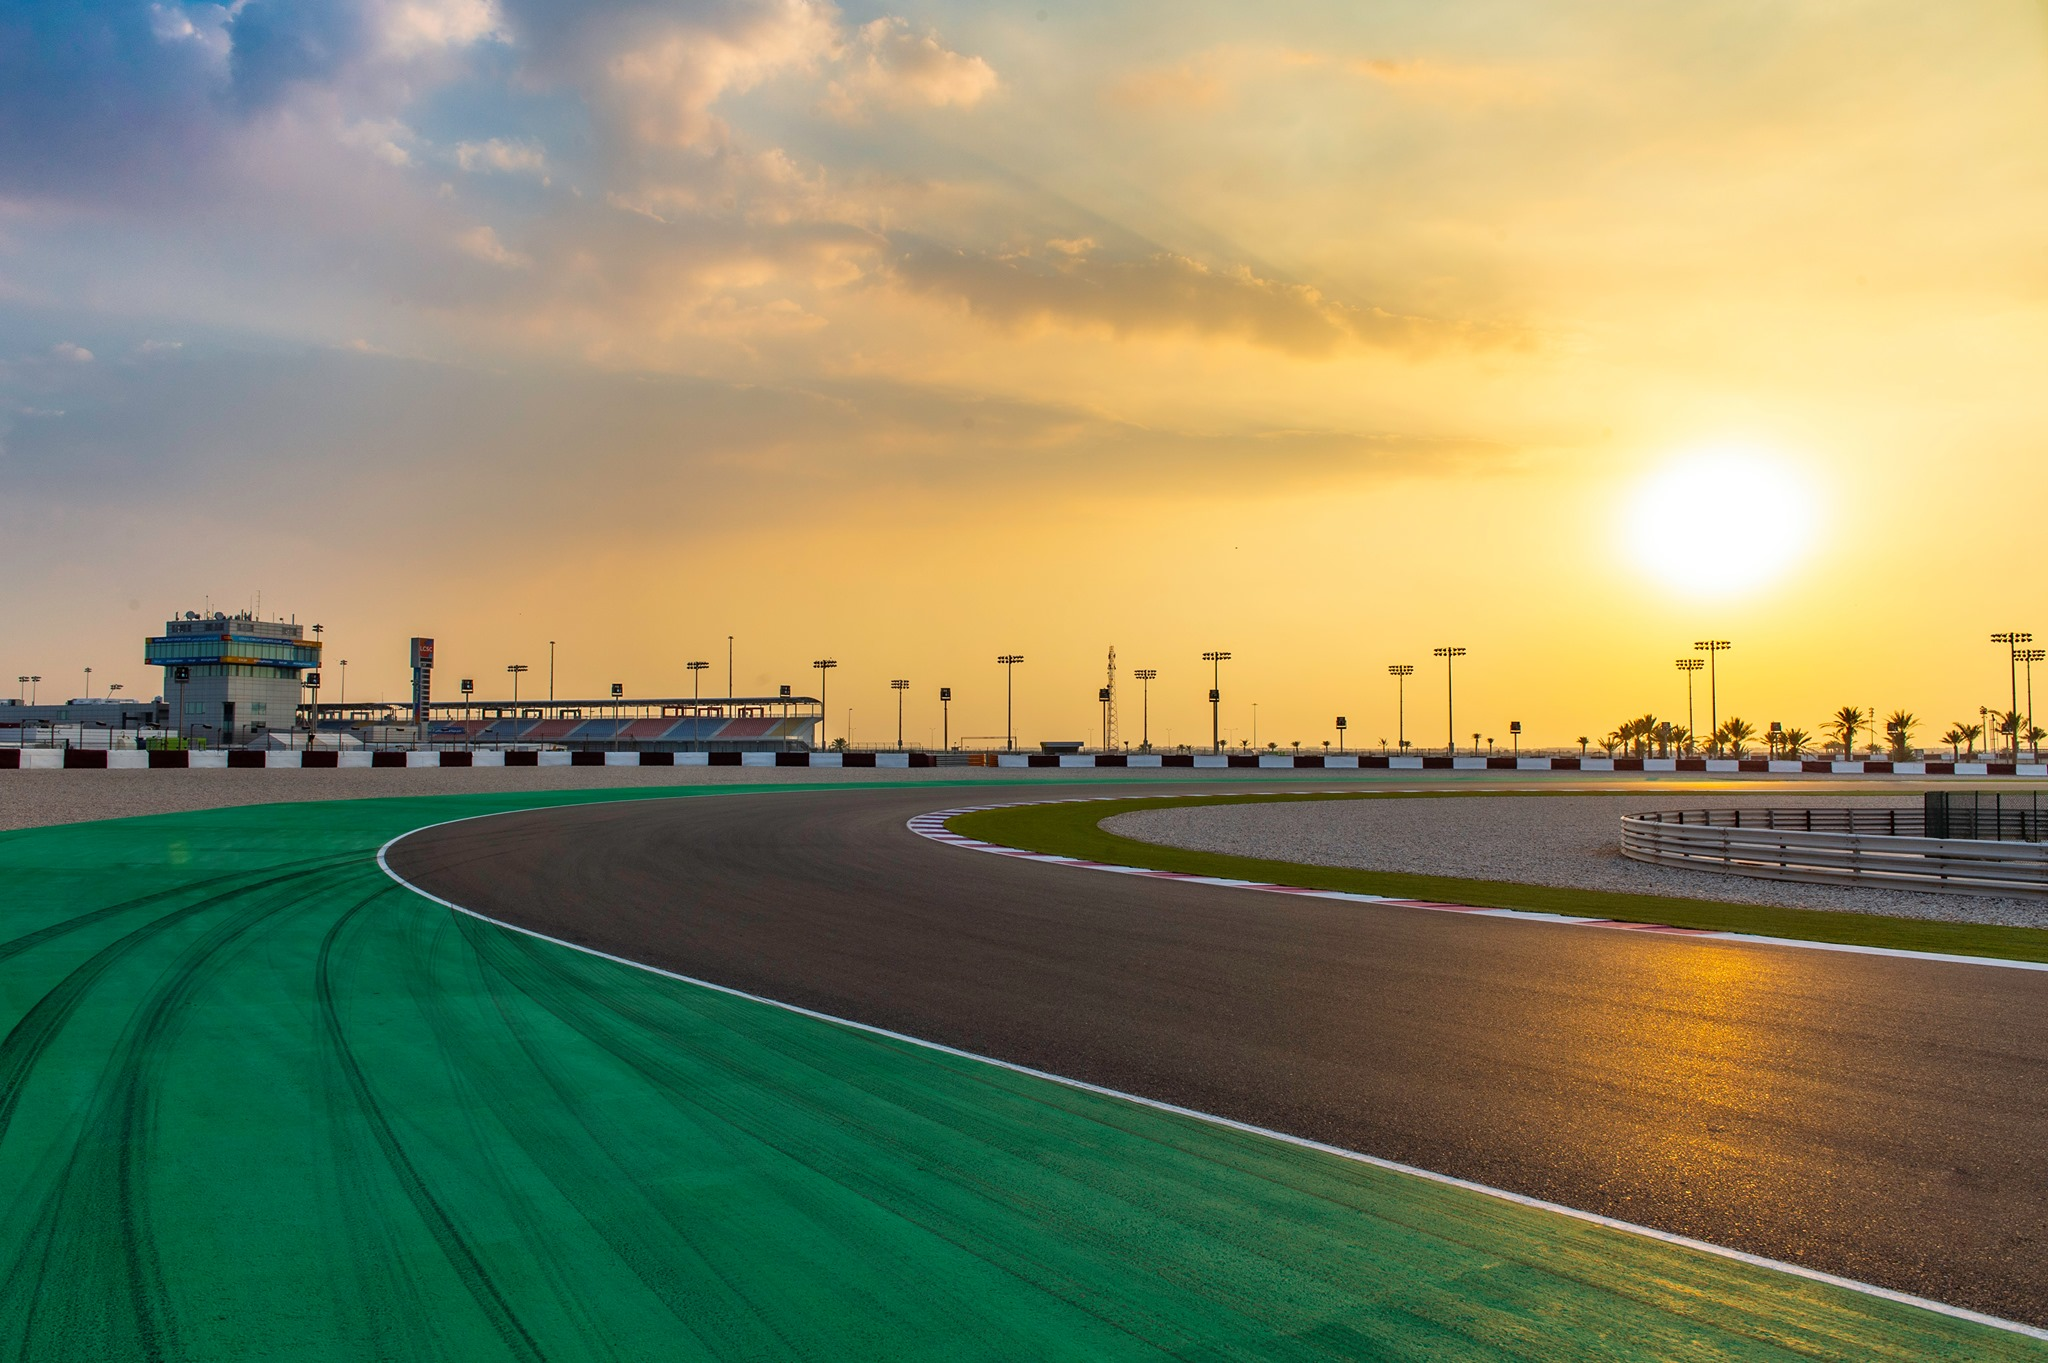 Qatar likely to host Formula One race as per revised calendar